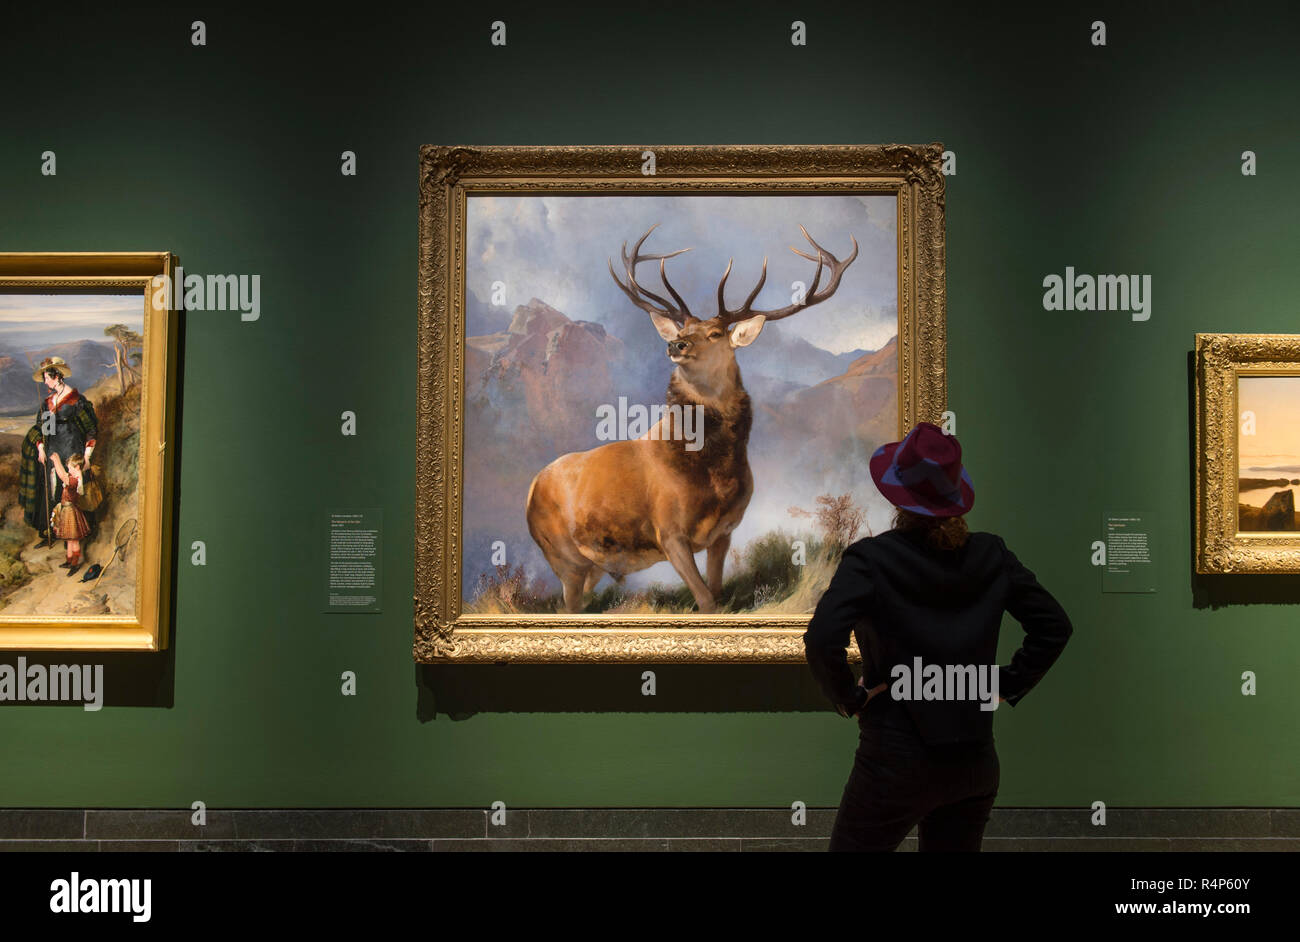 Image of: Mythical Creature The National Gallery London Uk 28 November 2018 Display Of Film And Photographs By Artist Rachel Maclean Titled The Lion And The Unicorn Alamy The National Gallery London Uk 28 November 2018 Display Of